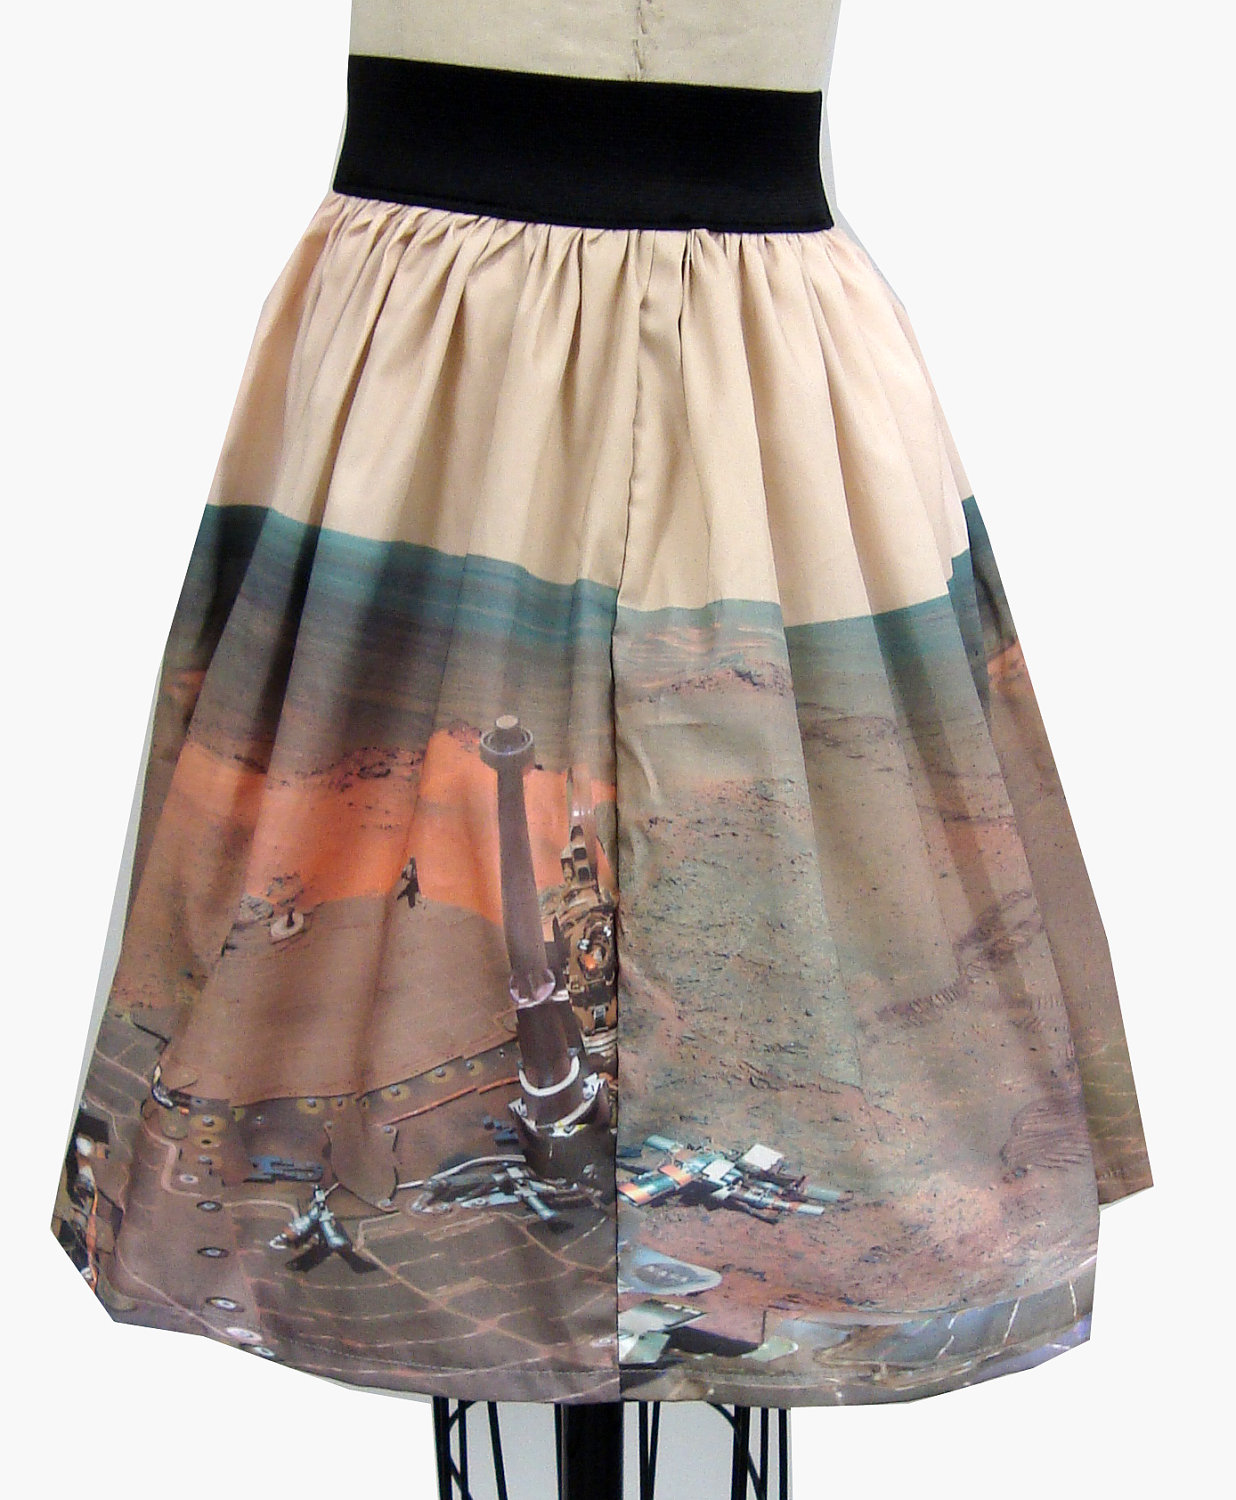 Mars rover panoramic skirt back